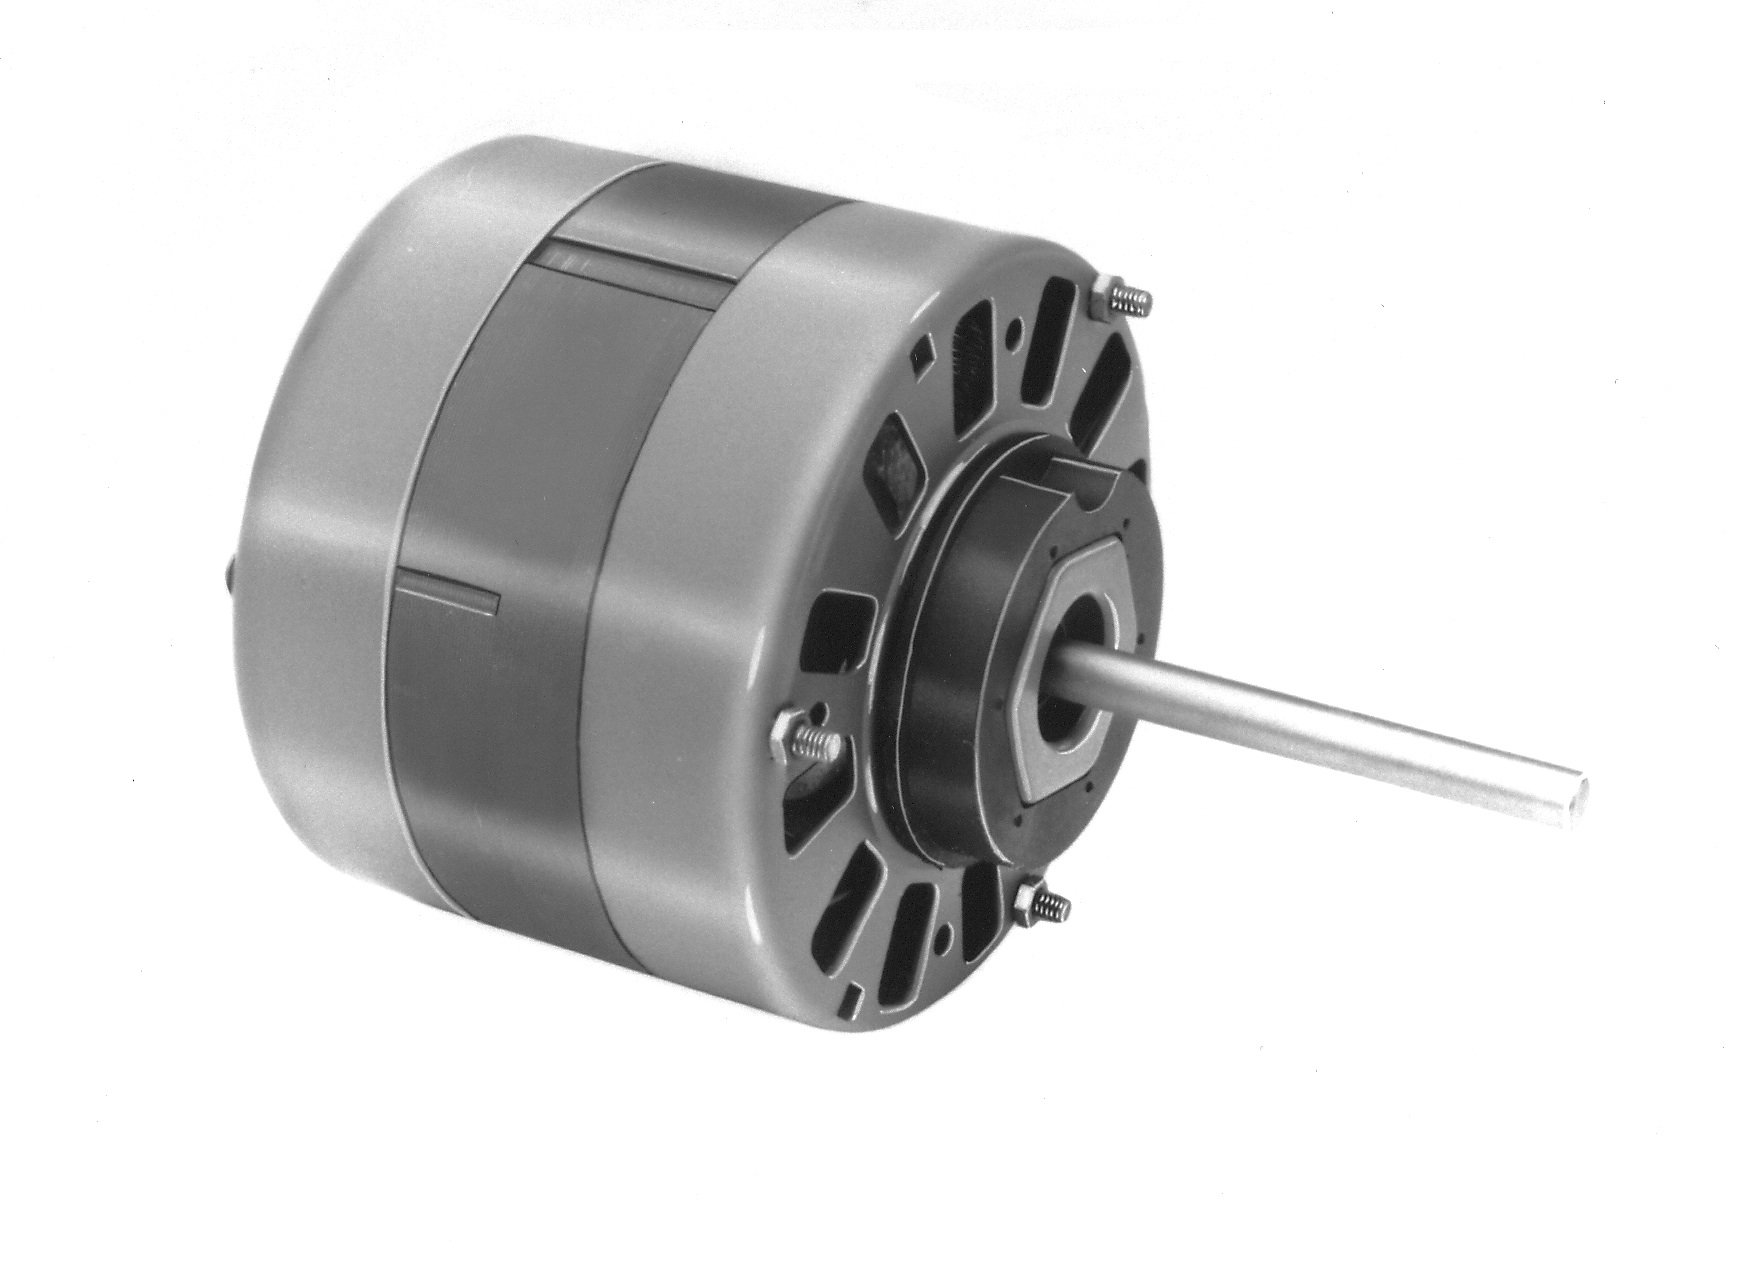 Fasco D160 5'' Frame Open Ventilated Shaded Pole Direct Drive Blower Motor with Sleeve Bearing, 1/10-1/12-1/15HP, 1050rpm, 115V, 60Hz, 3.4-2.8-2.4 amps